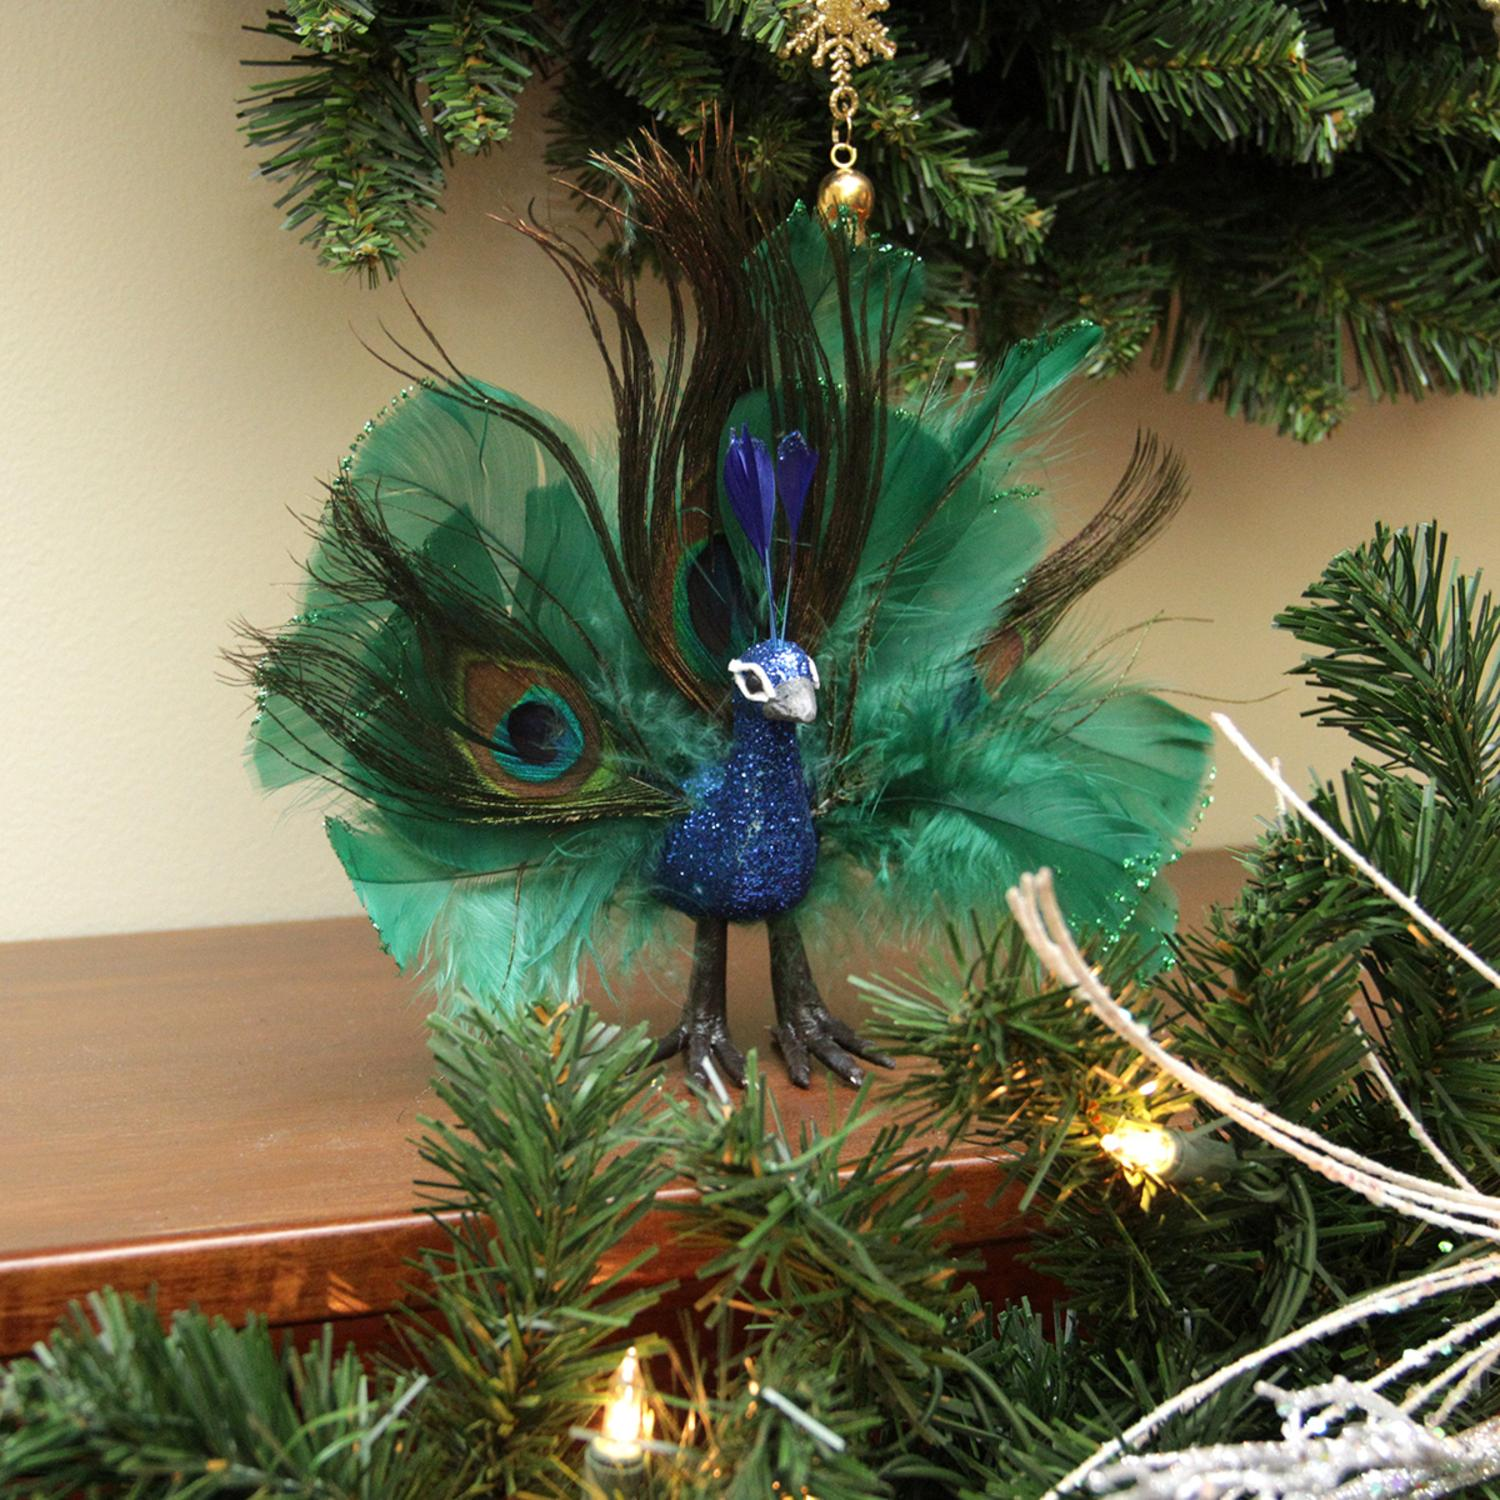 """7"""" Colorful Green Regal Peacock Bird with Open Tail Feathers Christmas Decoration - image 1 of 2"""